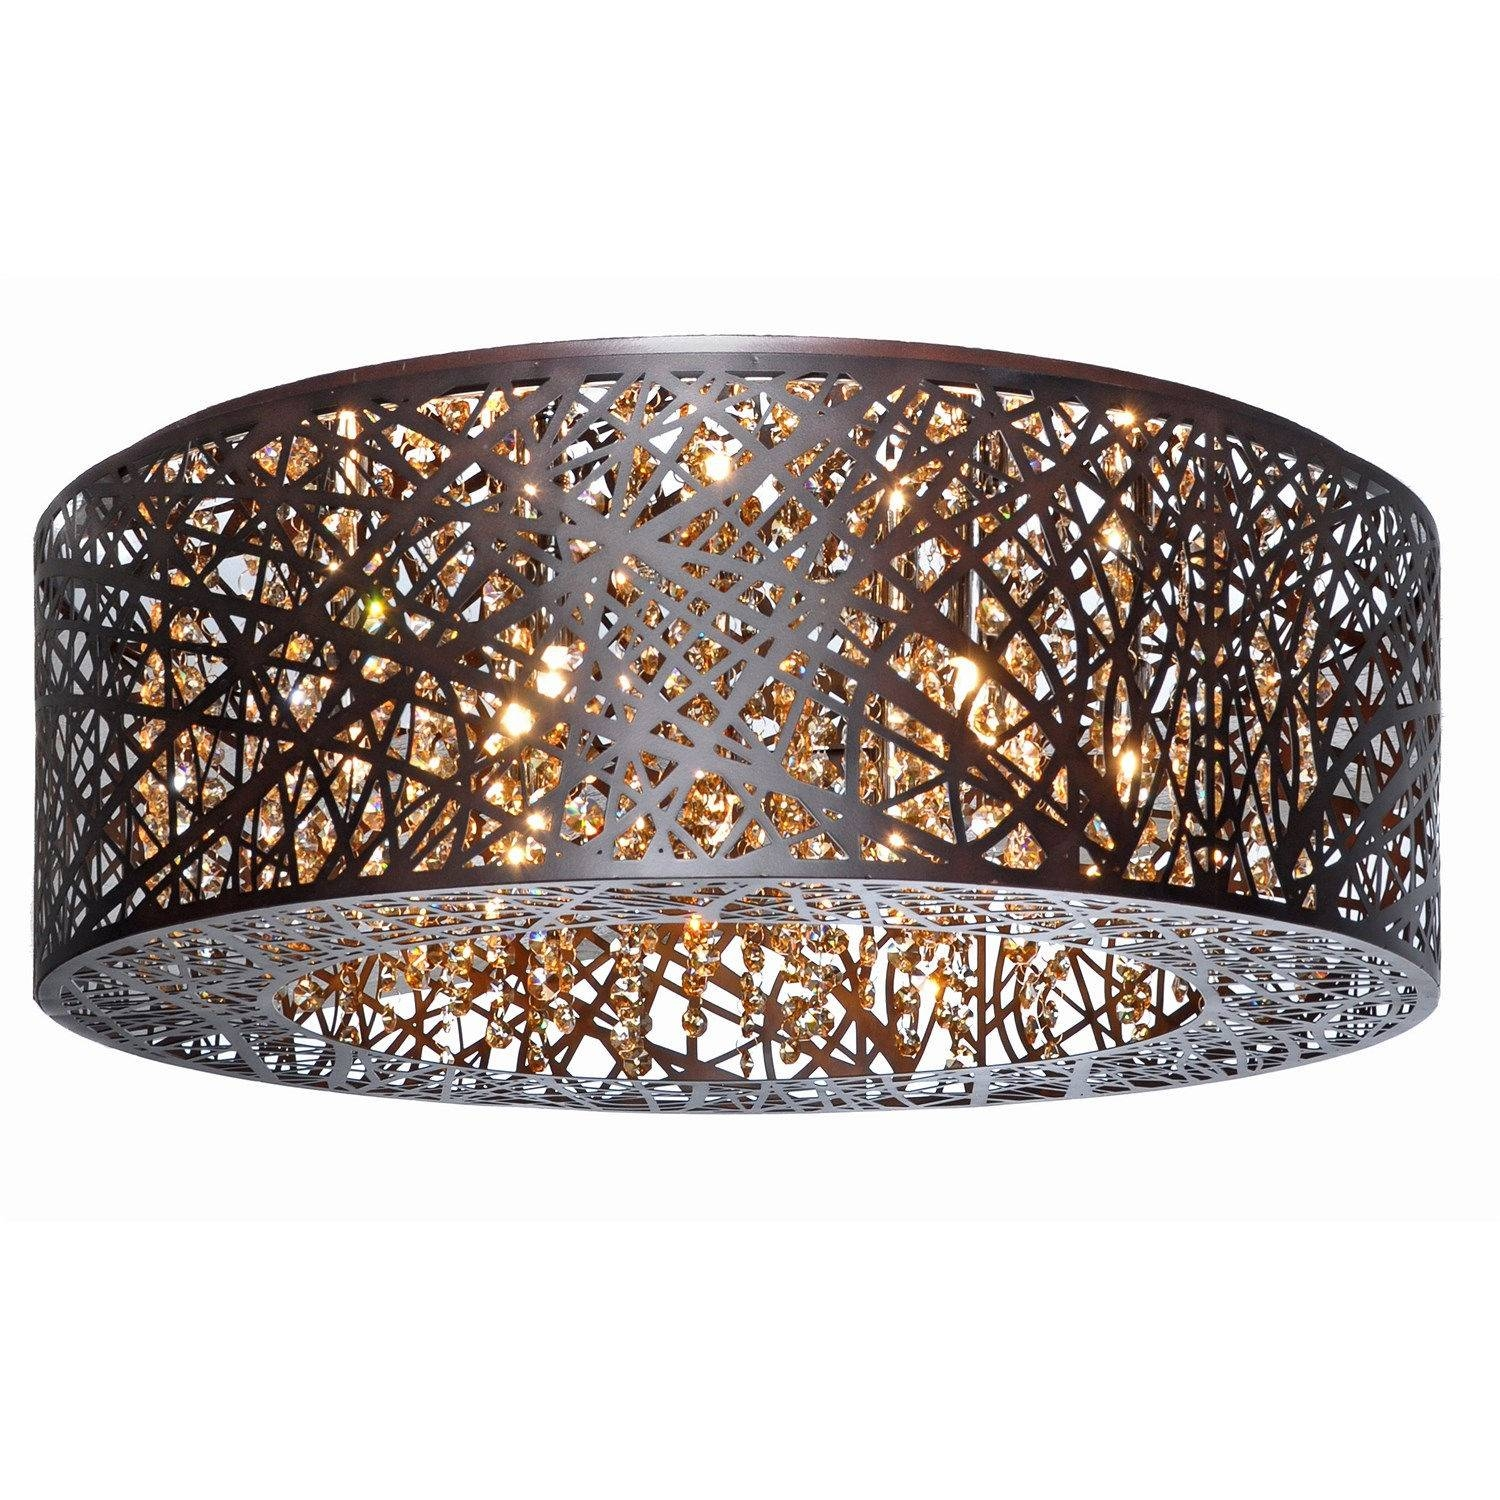 Awesome Inca 9 Light Pendant 35 For Your Modern Pendant Light With Throughout Inca 9 Light Pendants (View 1 of 15)